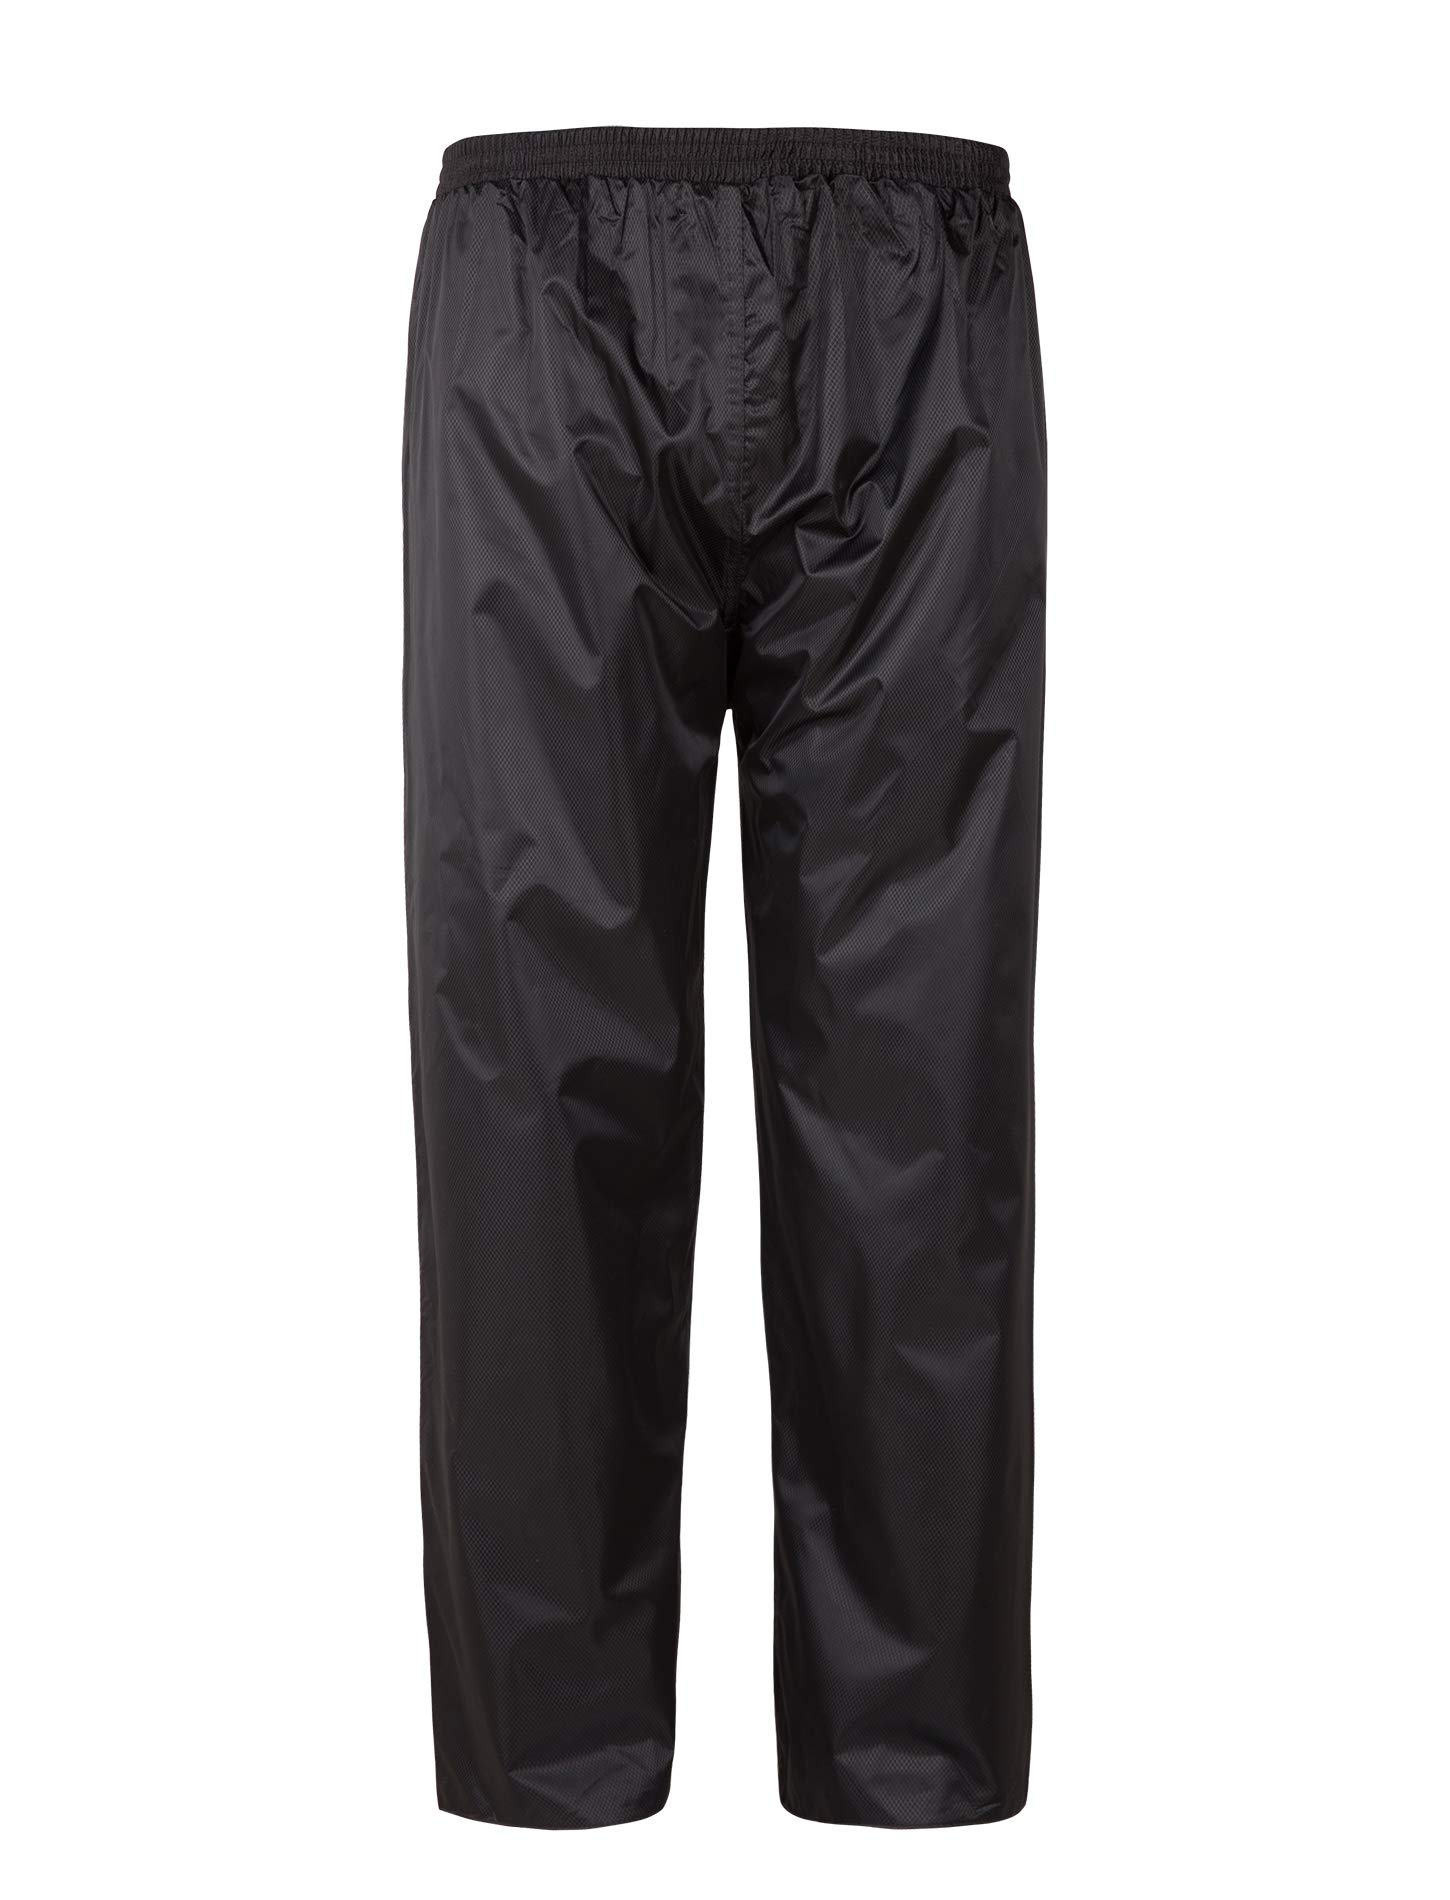 SWISSWELL Rain Pant for Men Waterproof Rainwear by SWISSWELL